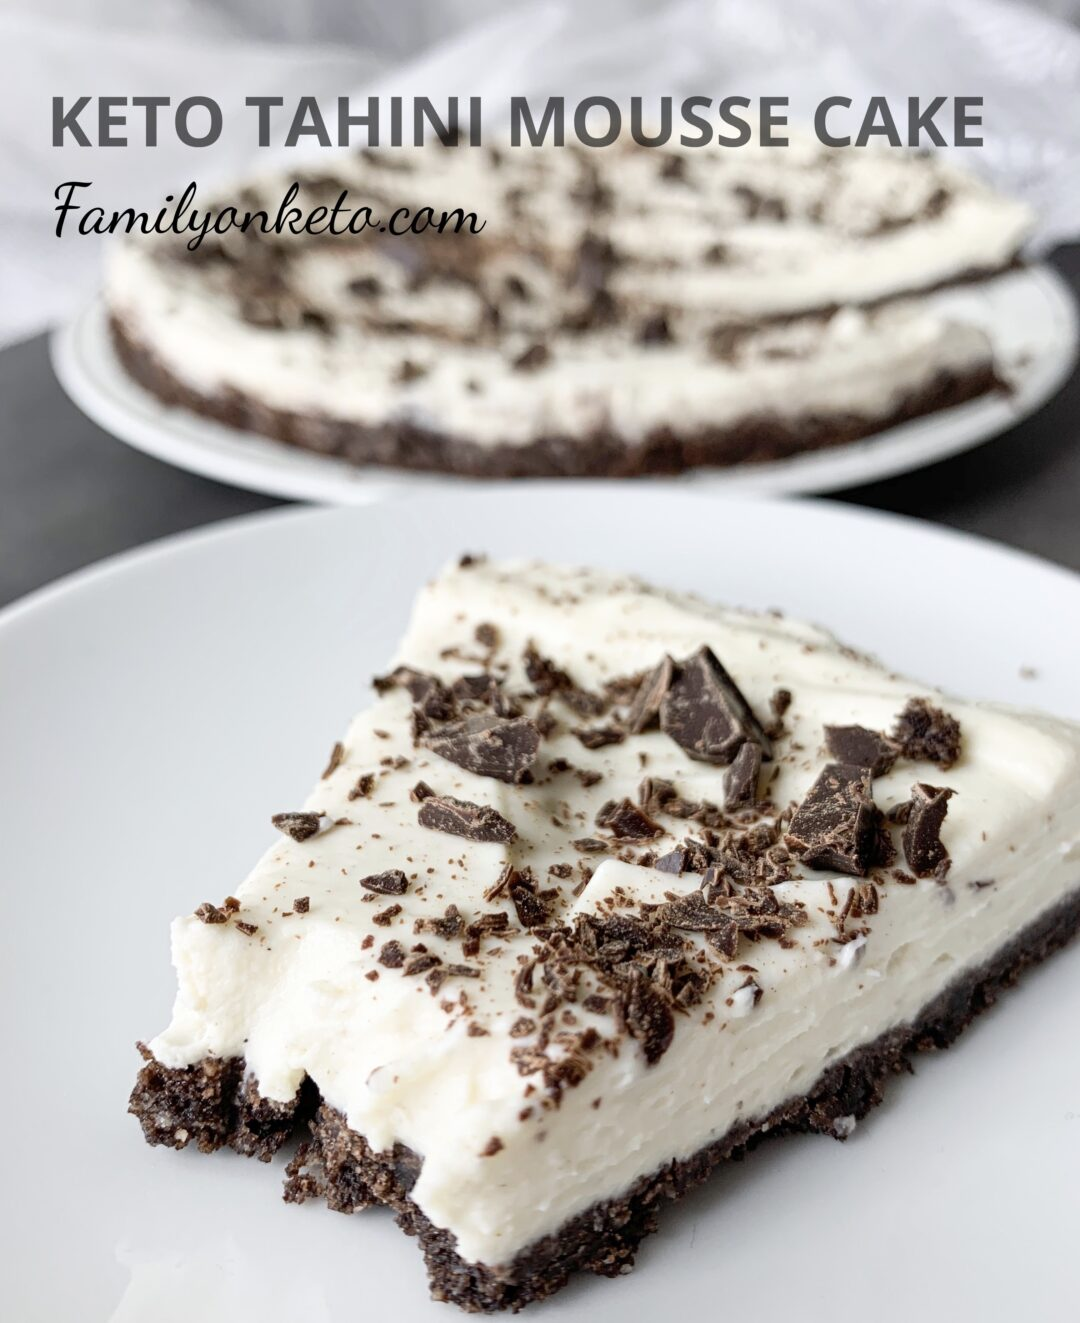 Keto tahini mousse cake with chocolate